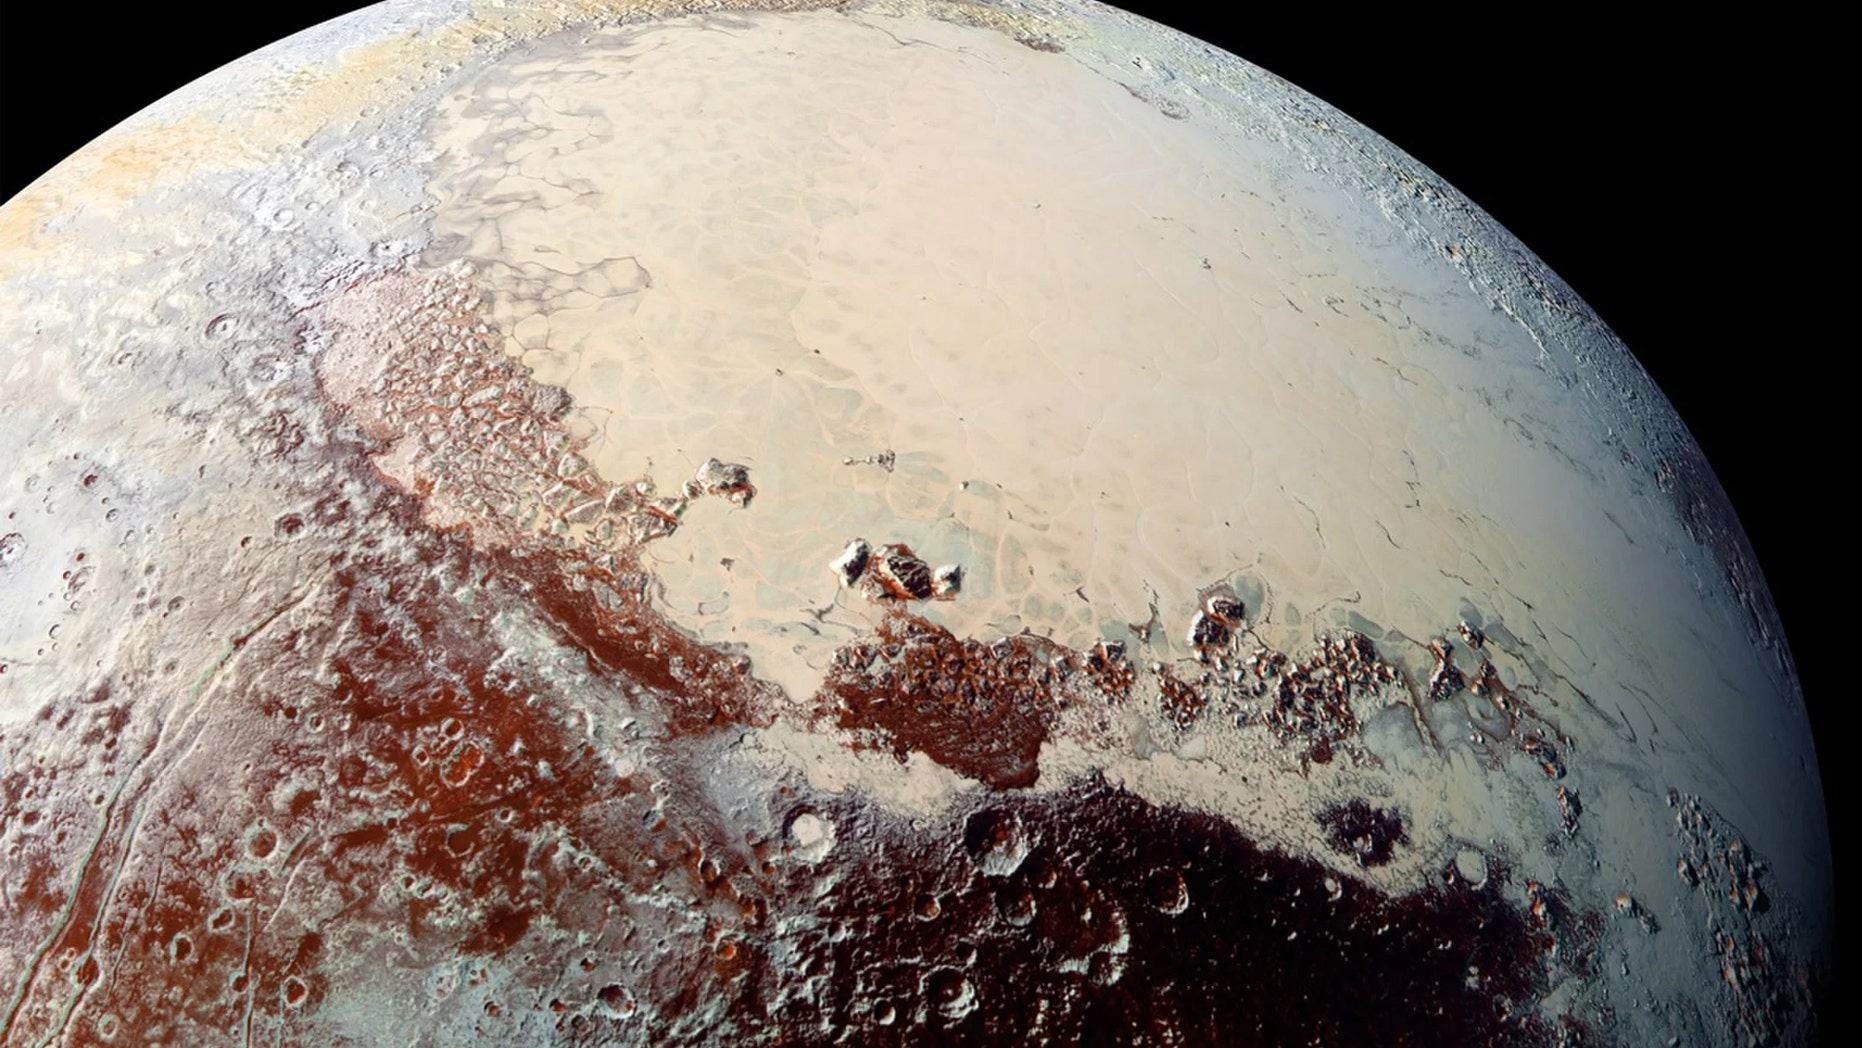 This view of Pluto's Sputnik Planitia nitrogen-ice plain was captured by NASA's New Horizons spacecraft during its flyby of the dwarf planet in July 2015. Credit: NASA/JHUAPL/SwRI